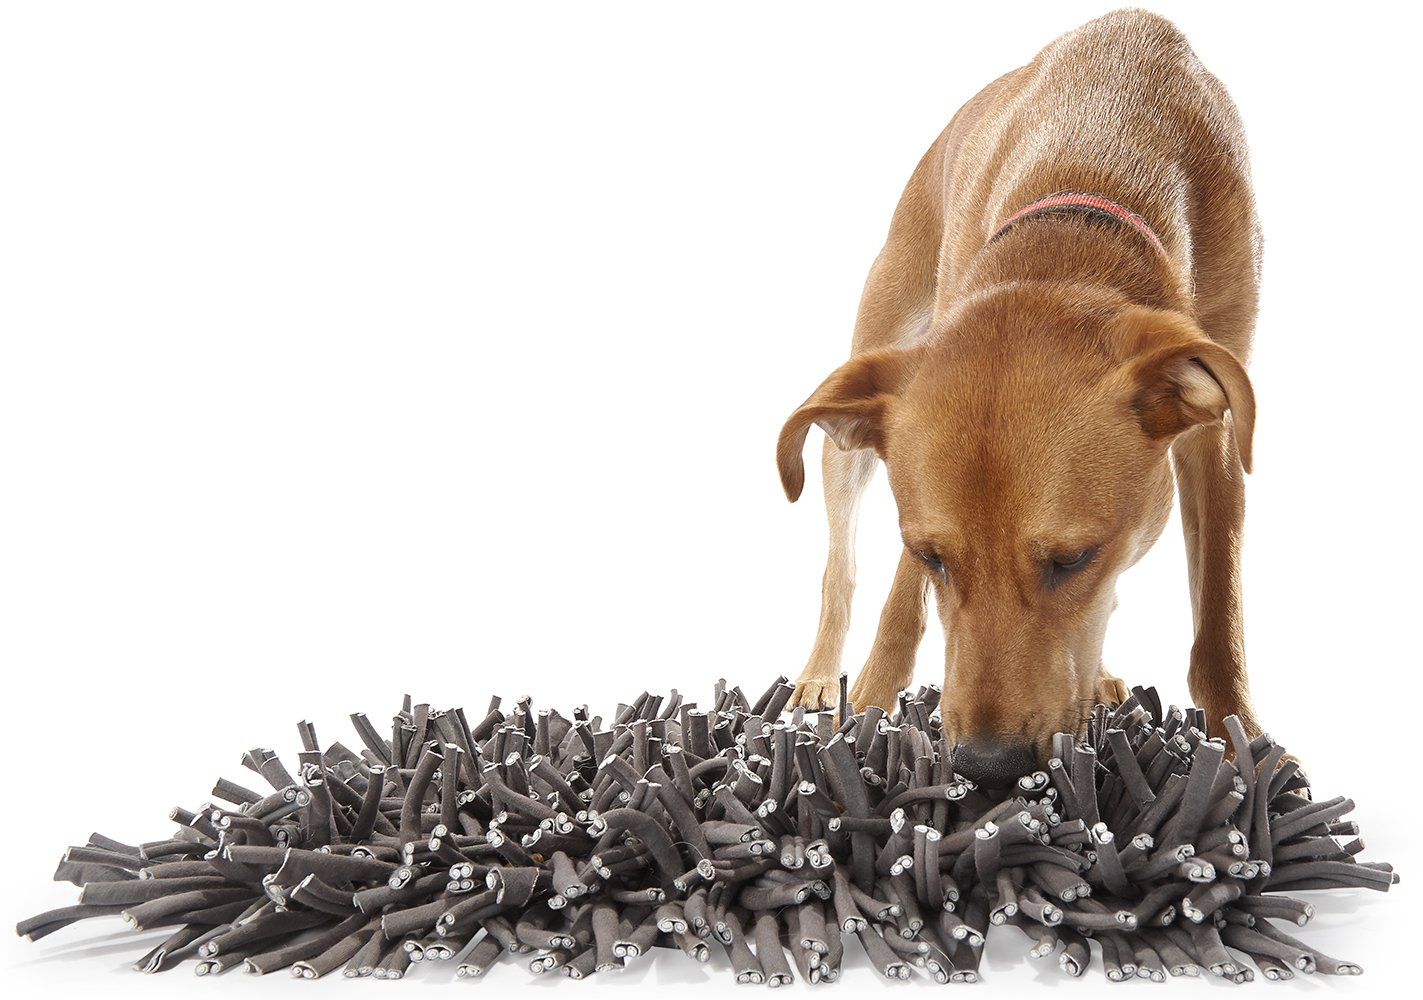 Wooly Snuffle Mat - Feeding Mat for Dogs (12'' x 18'') - Grey Feeding Mat - Encourages Natural Foraging Skills - Easy to Fill - Fun to Use Design - Durable and Machine Washable - Perfect for Any Breed